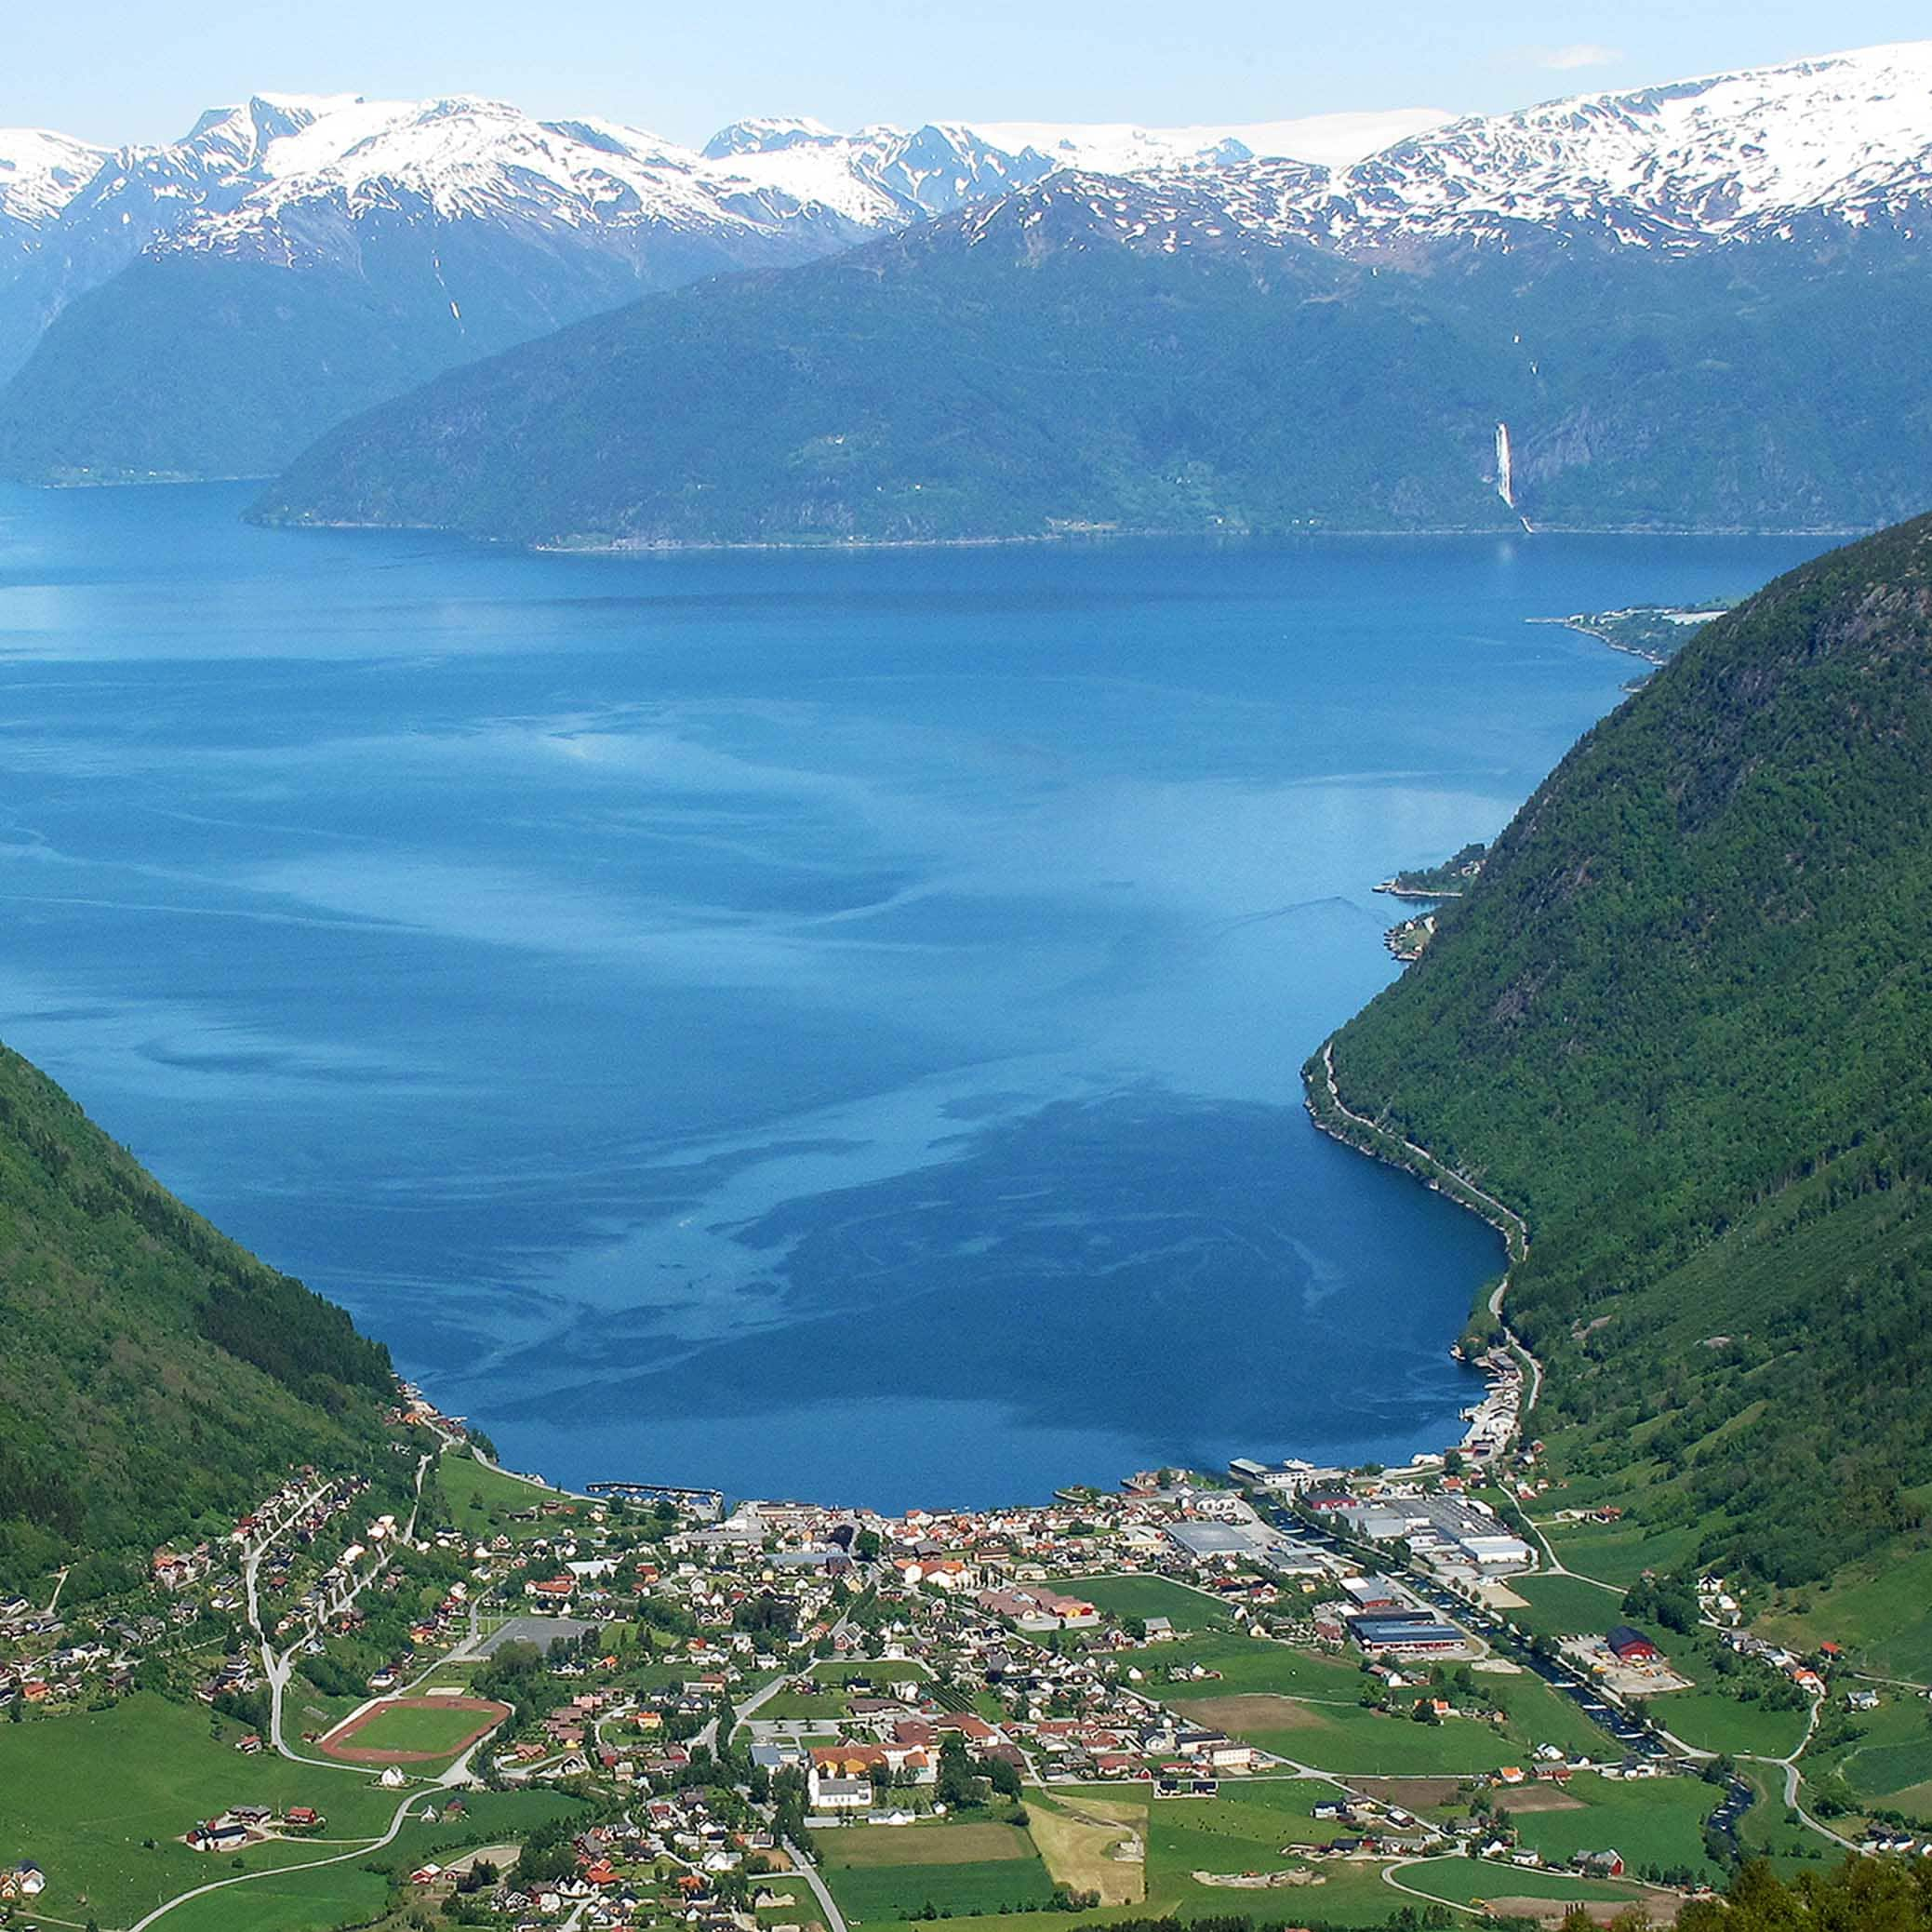 A view of Vik from the famous viewpoint Storesvingen where you see the small village of Vik bordering the waters of the Sognefjord with snowcapped mountains in the background.